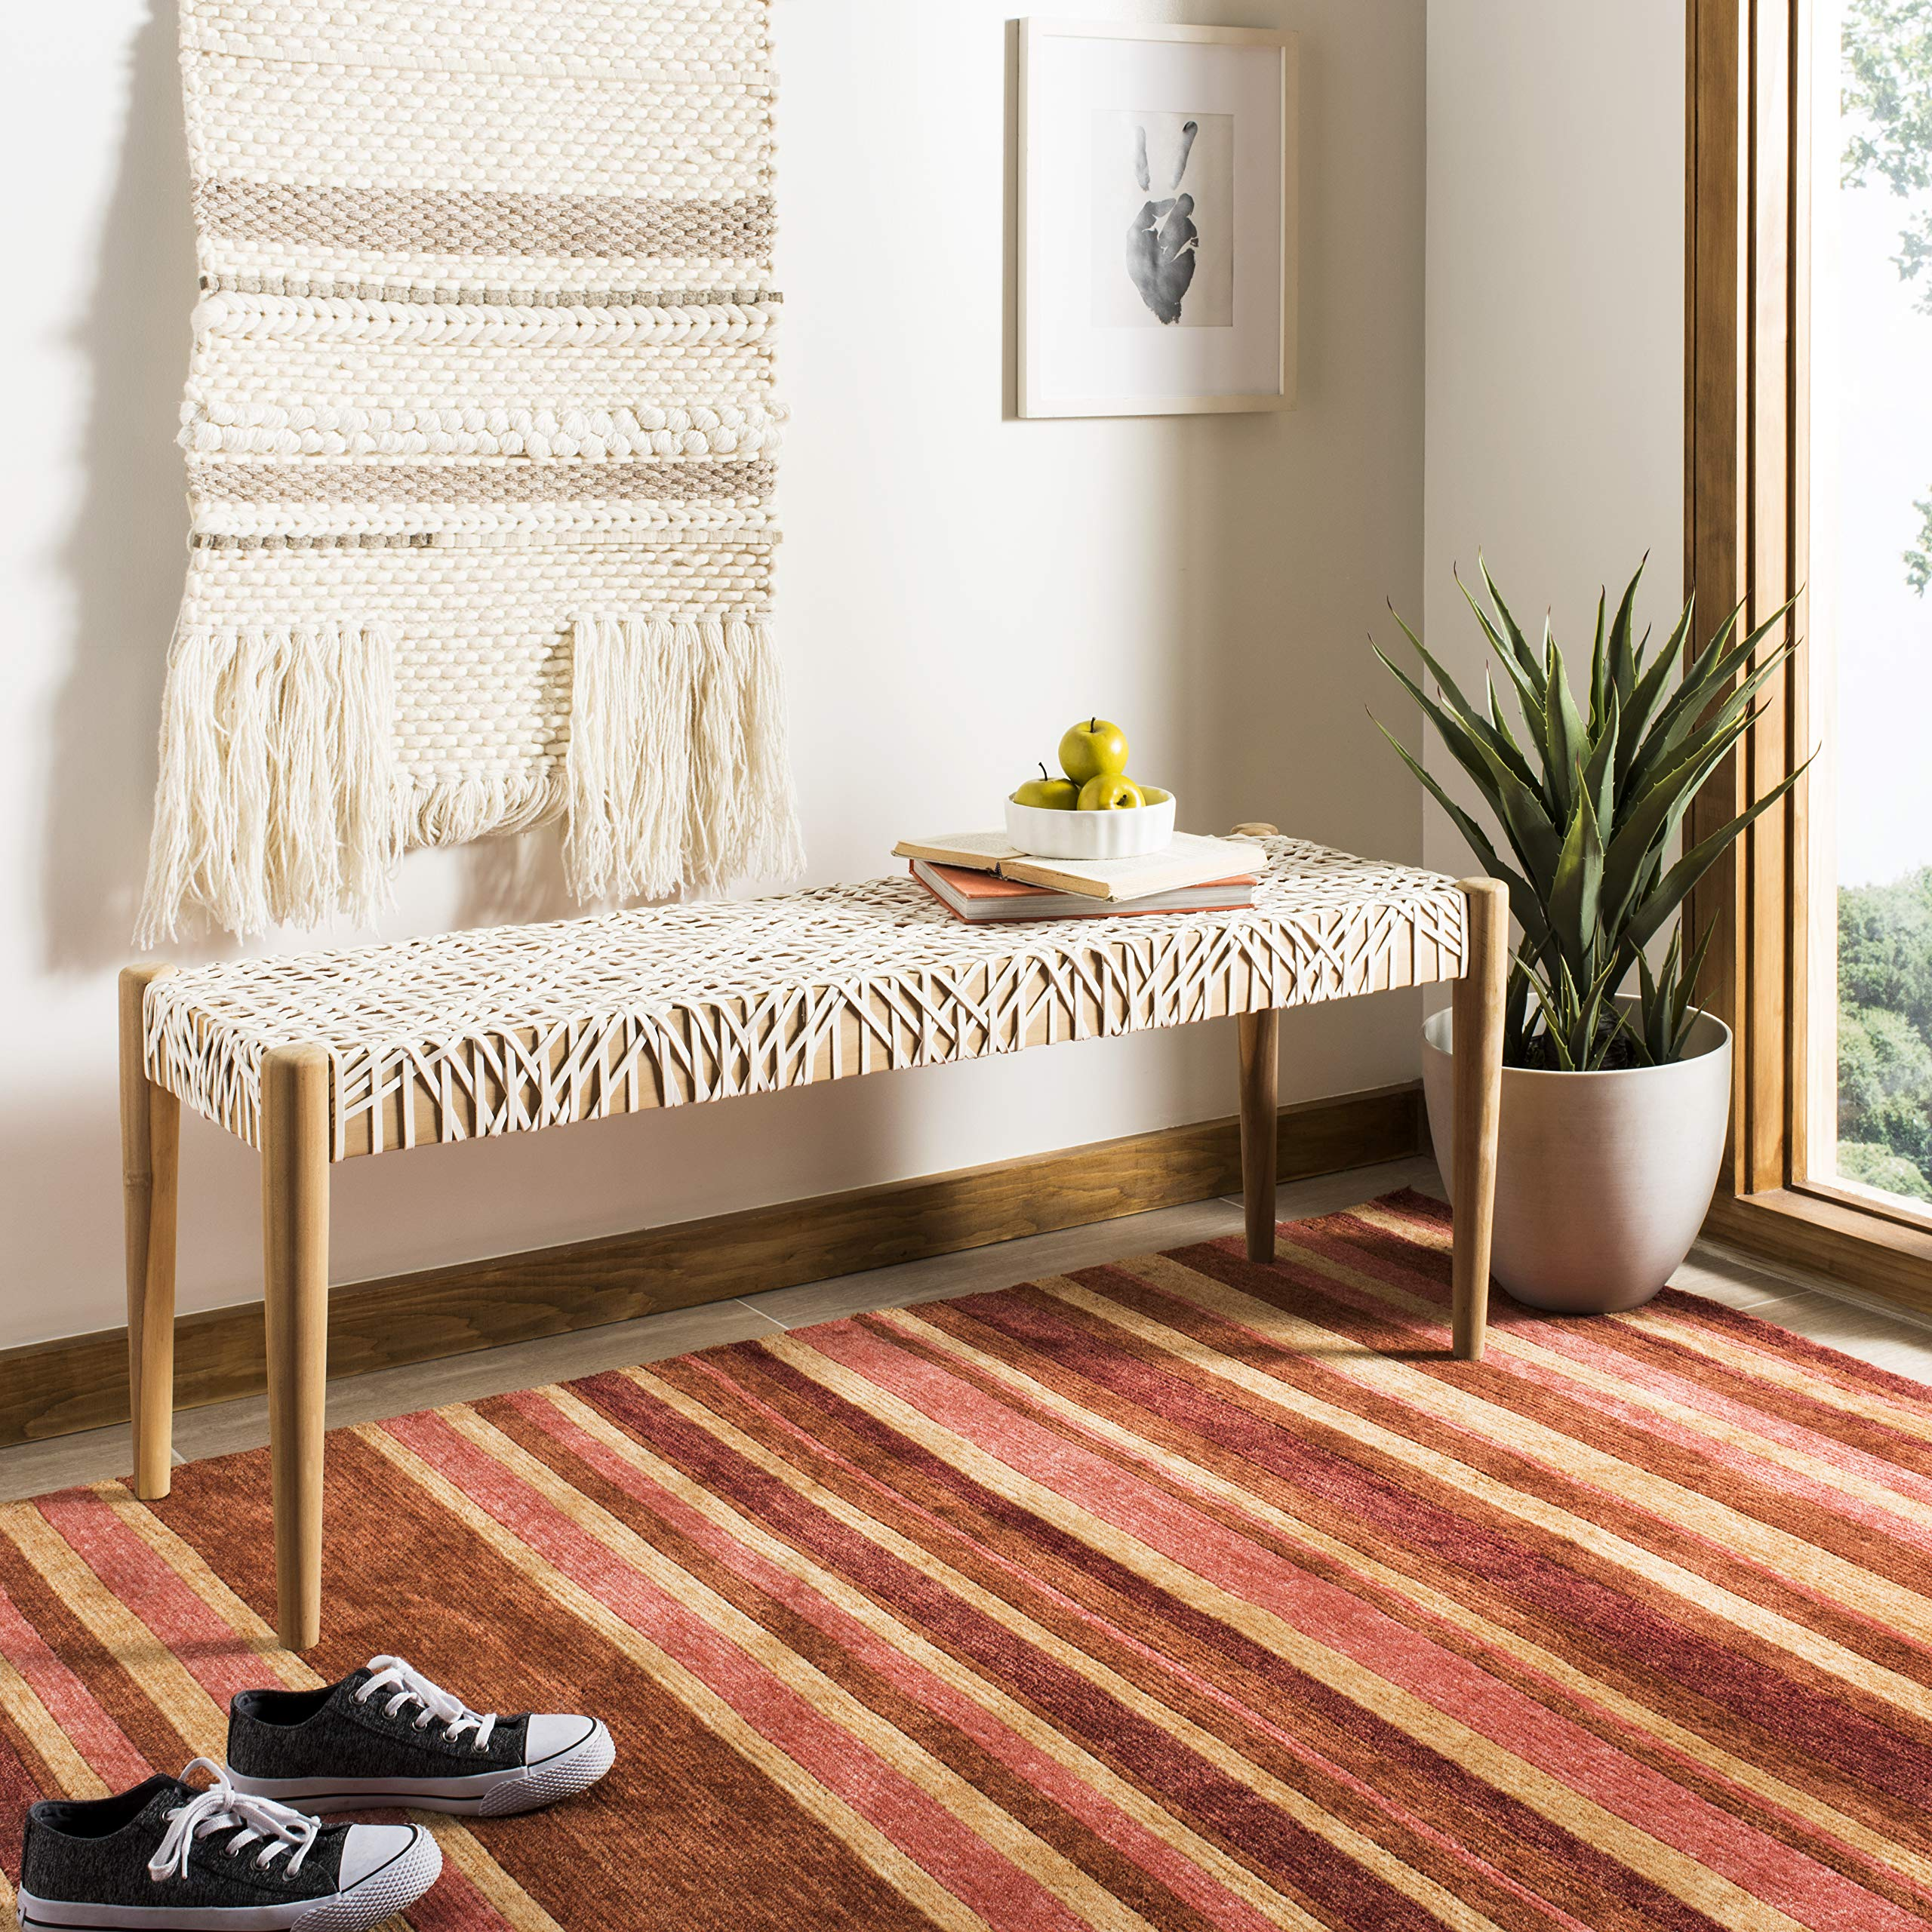 Safavieh BCH1000A Home Collection Bandelier Bench, Off- Off-White/Natural by Safavieh (Image #1)